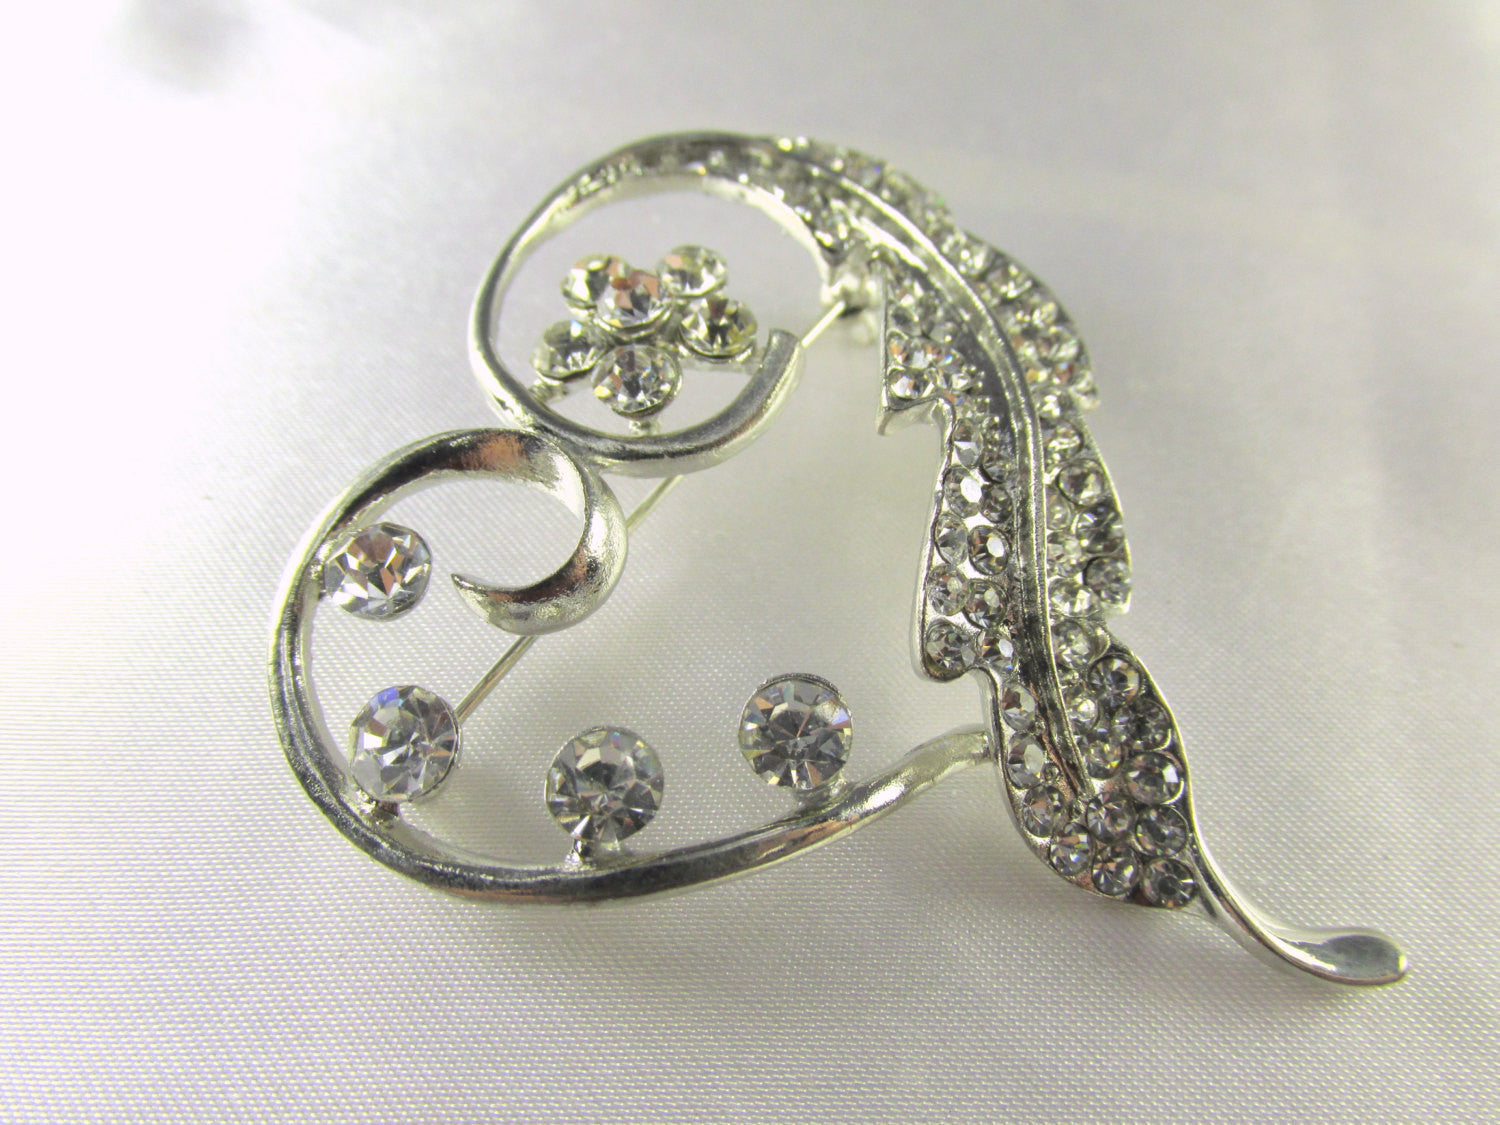 Silver Heart Brooch With Clear Crystals - Odyssey Creations